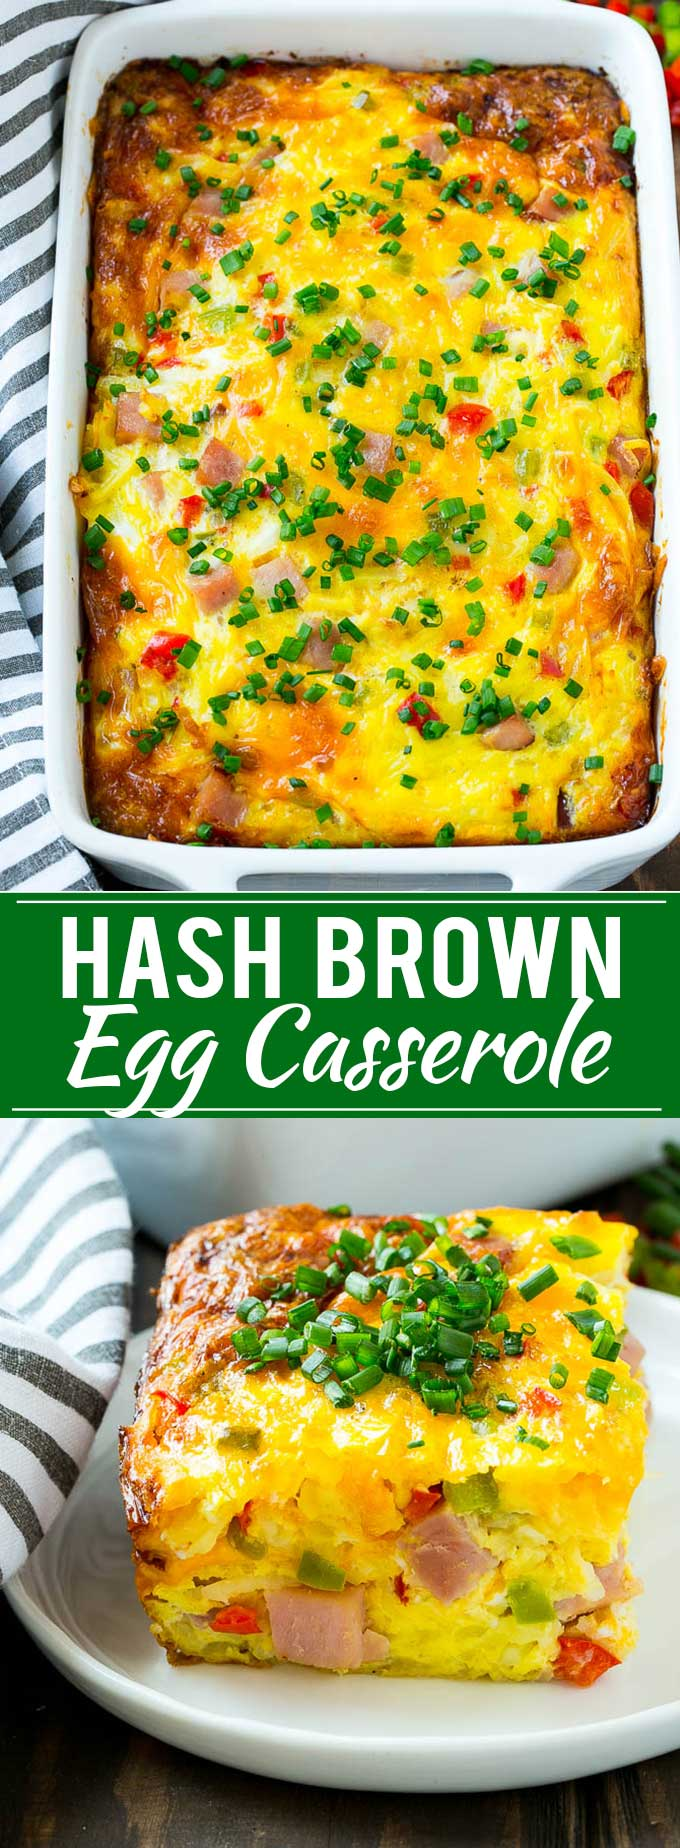 Hash Brown Egg Casserole Recipe | Breakfast Casserole with Ham | Hash Brown Casserole | Ham and Egg Casserole | Egg Casserole with Ham